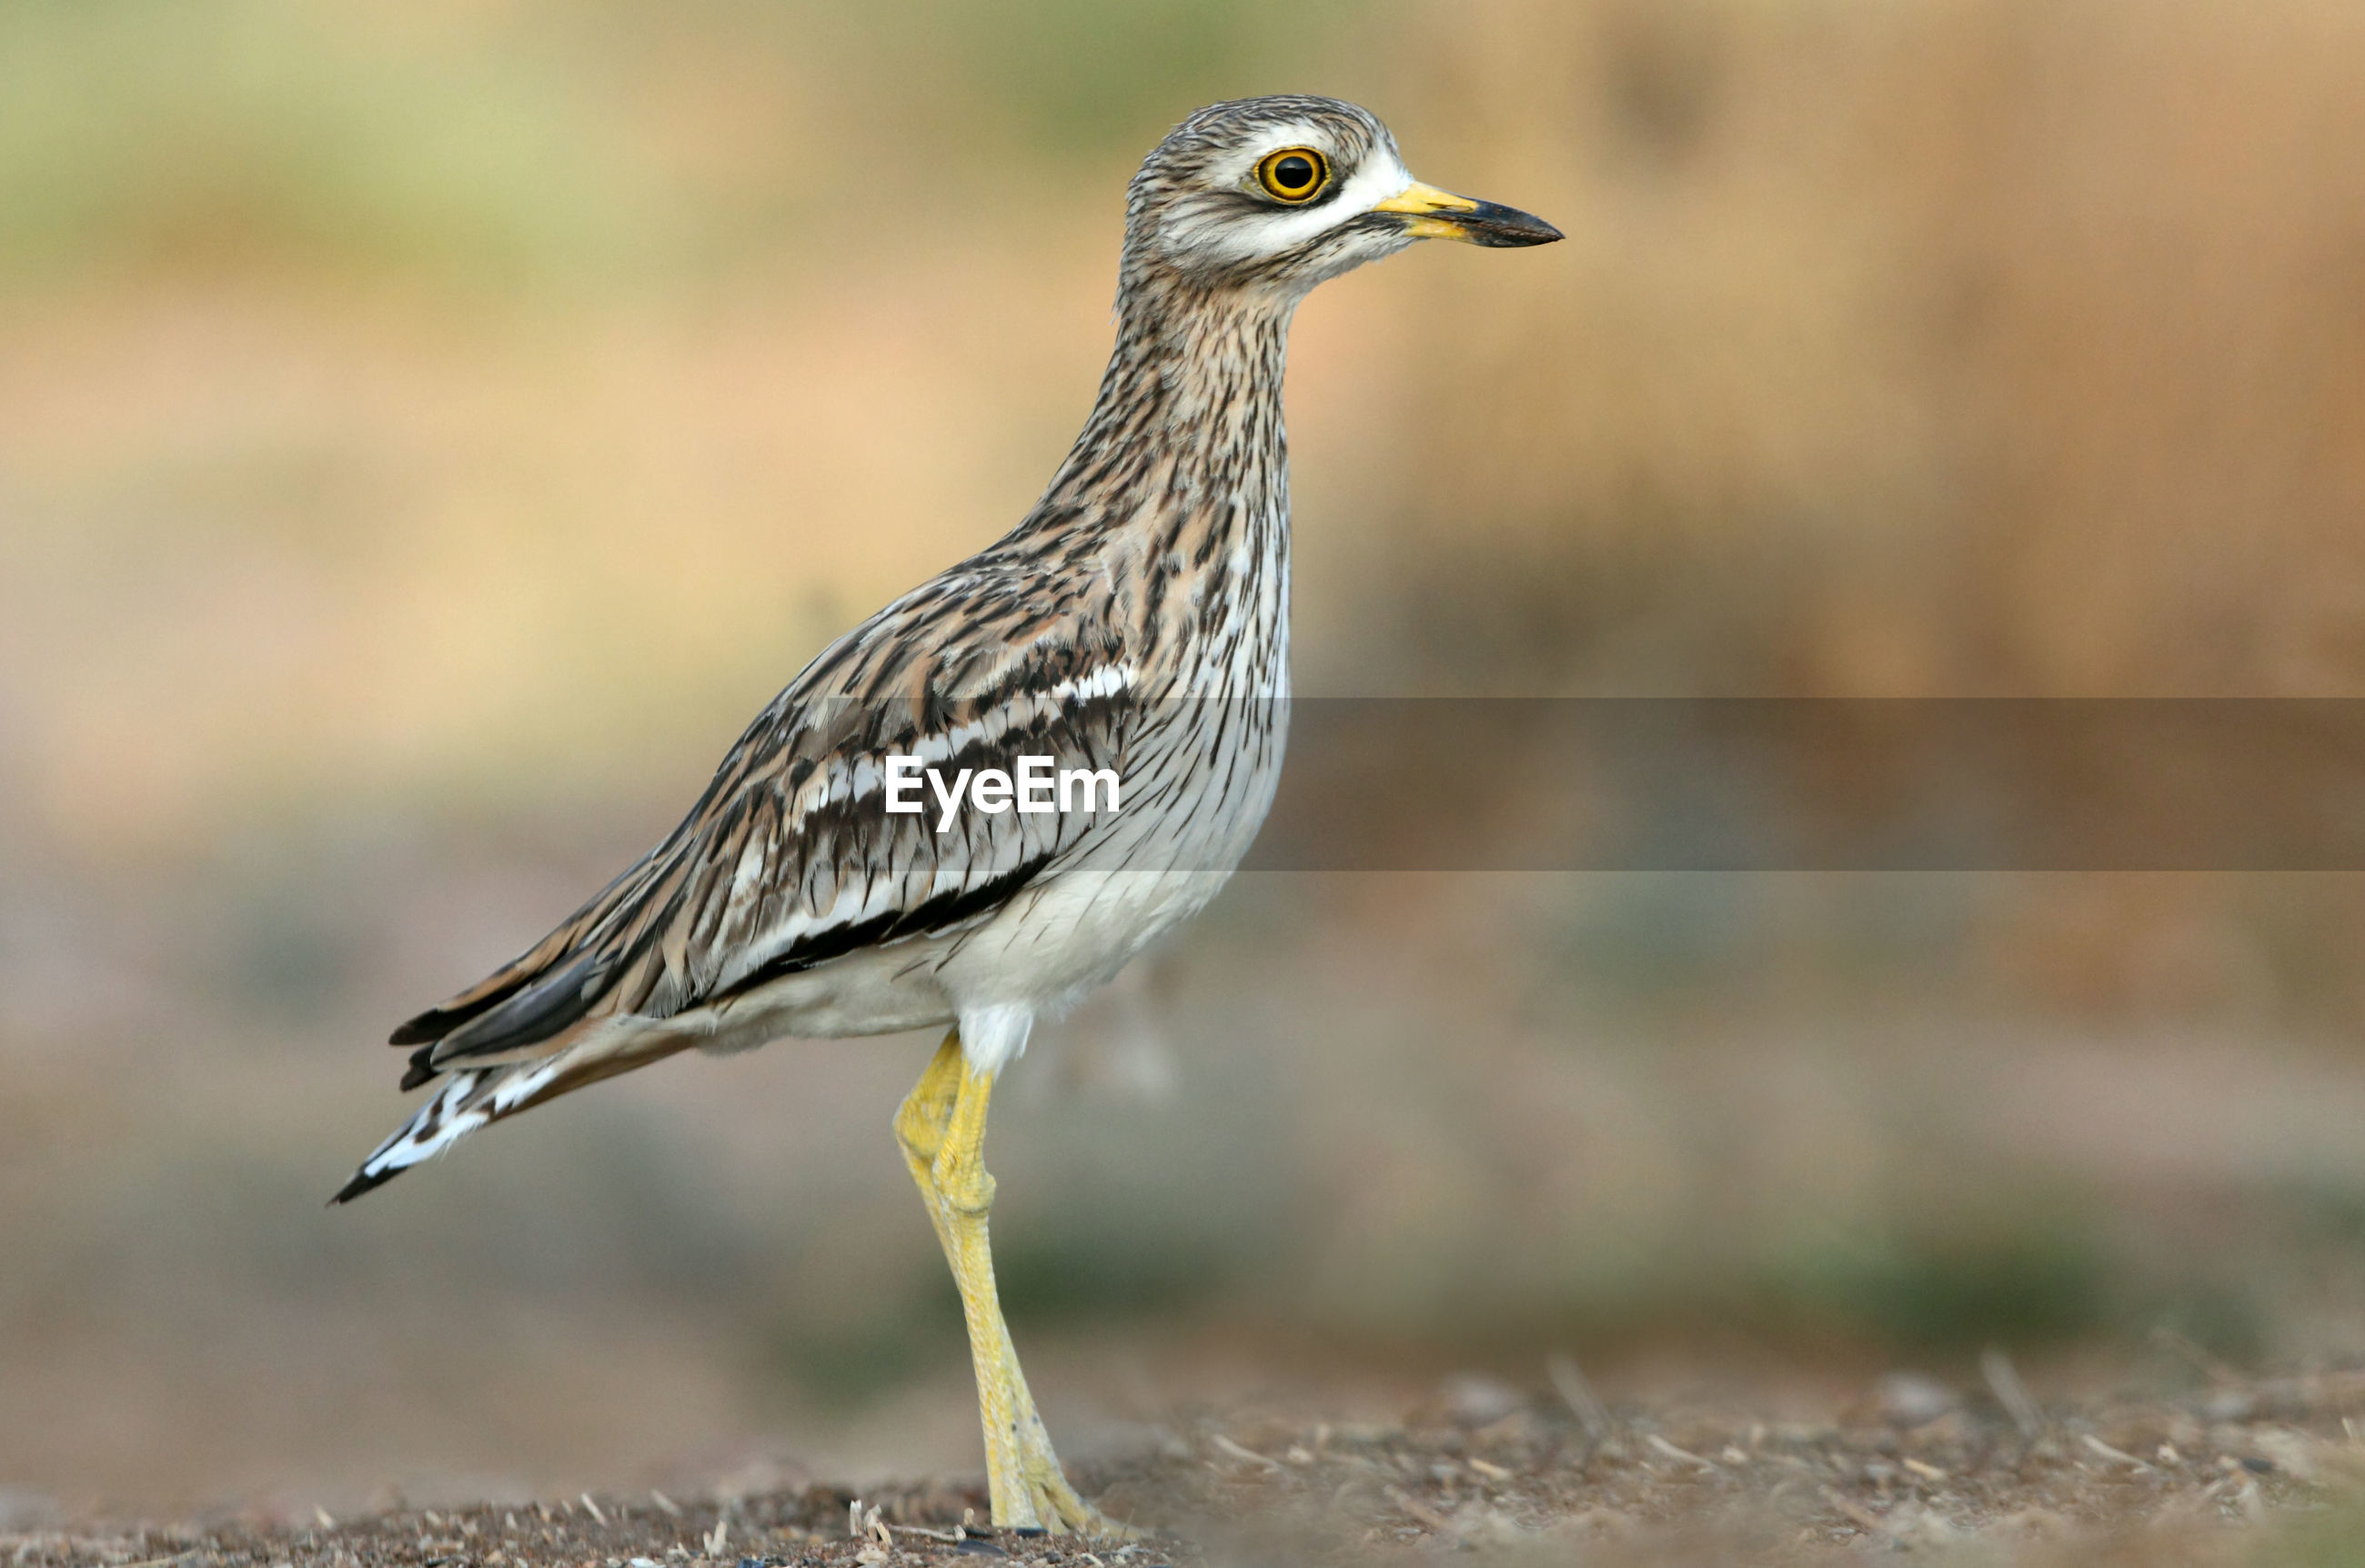 CLOSE-UP OF A BIRD PERCHING ON A LAND